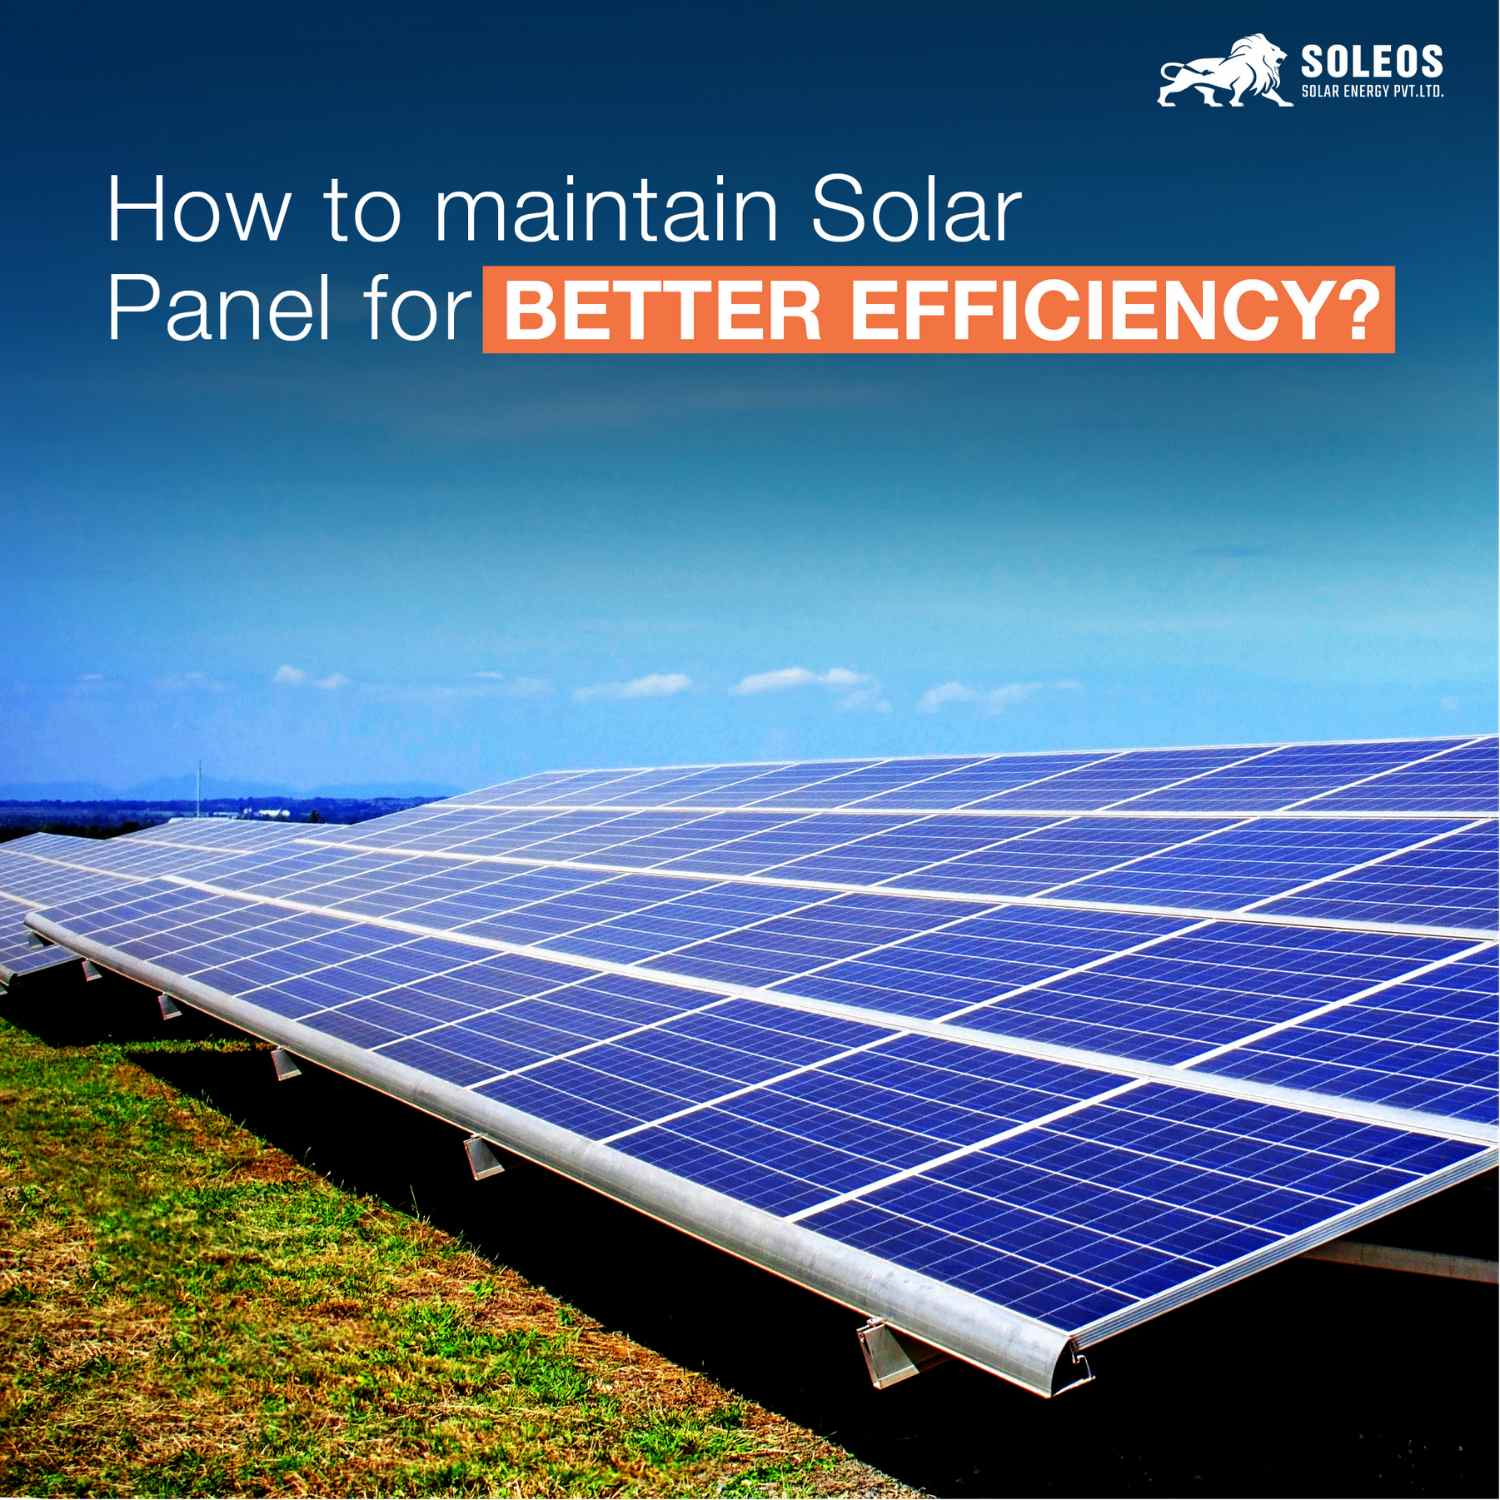 How to maintain Solar Panel for better efficiency?